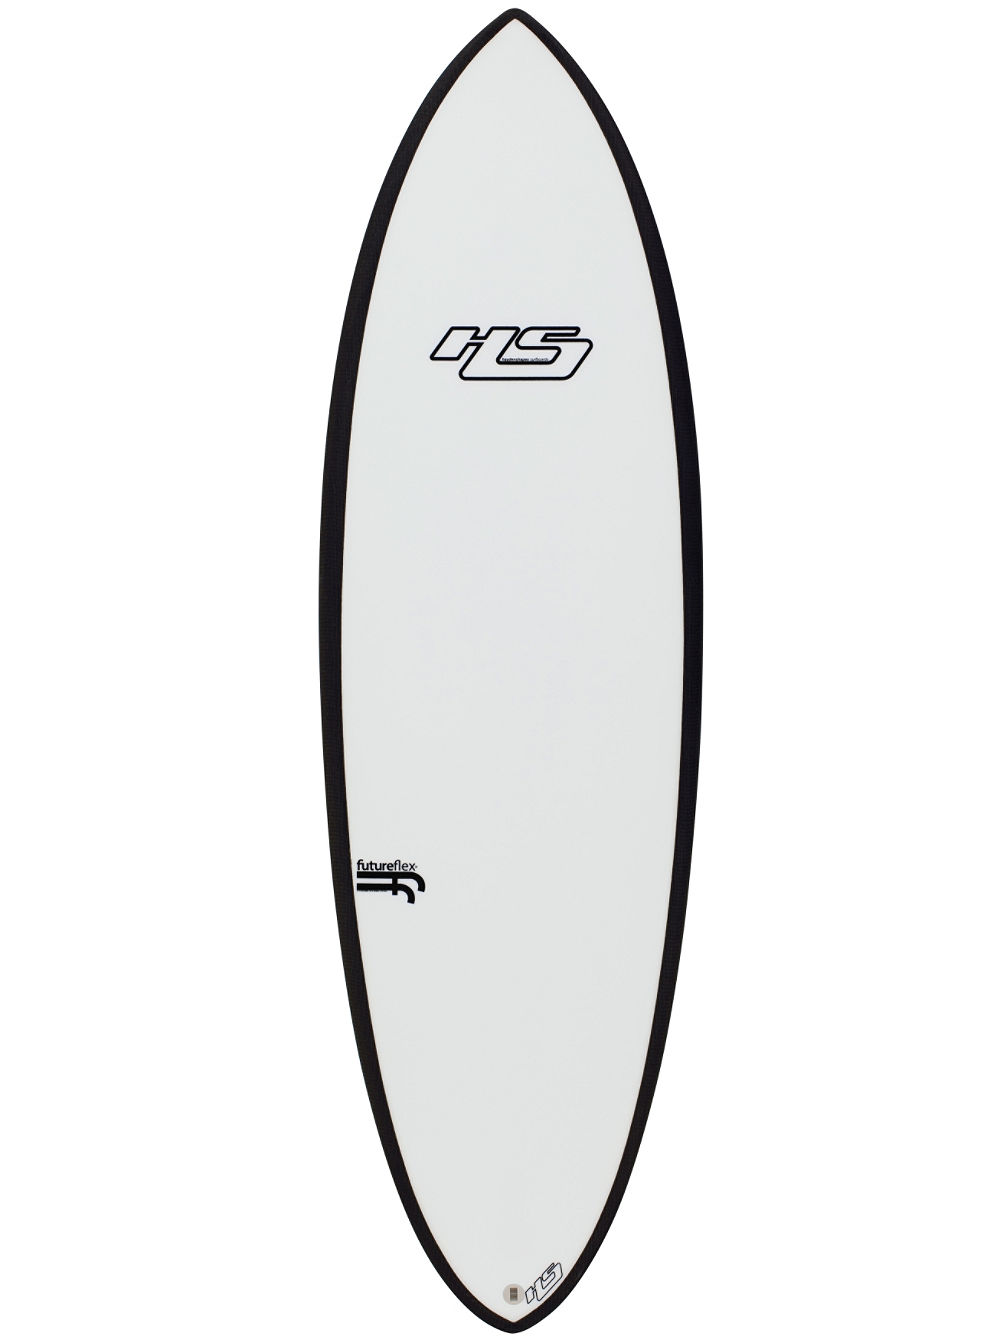 Hypto Krypto Ff Fcs2 6.2 Tabla de surf